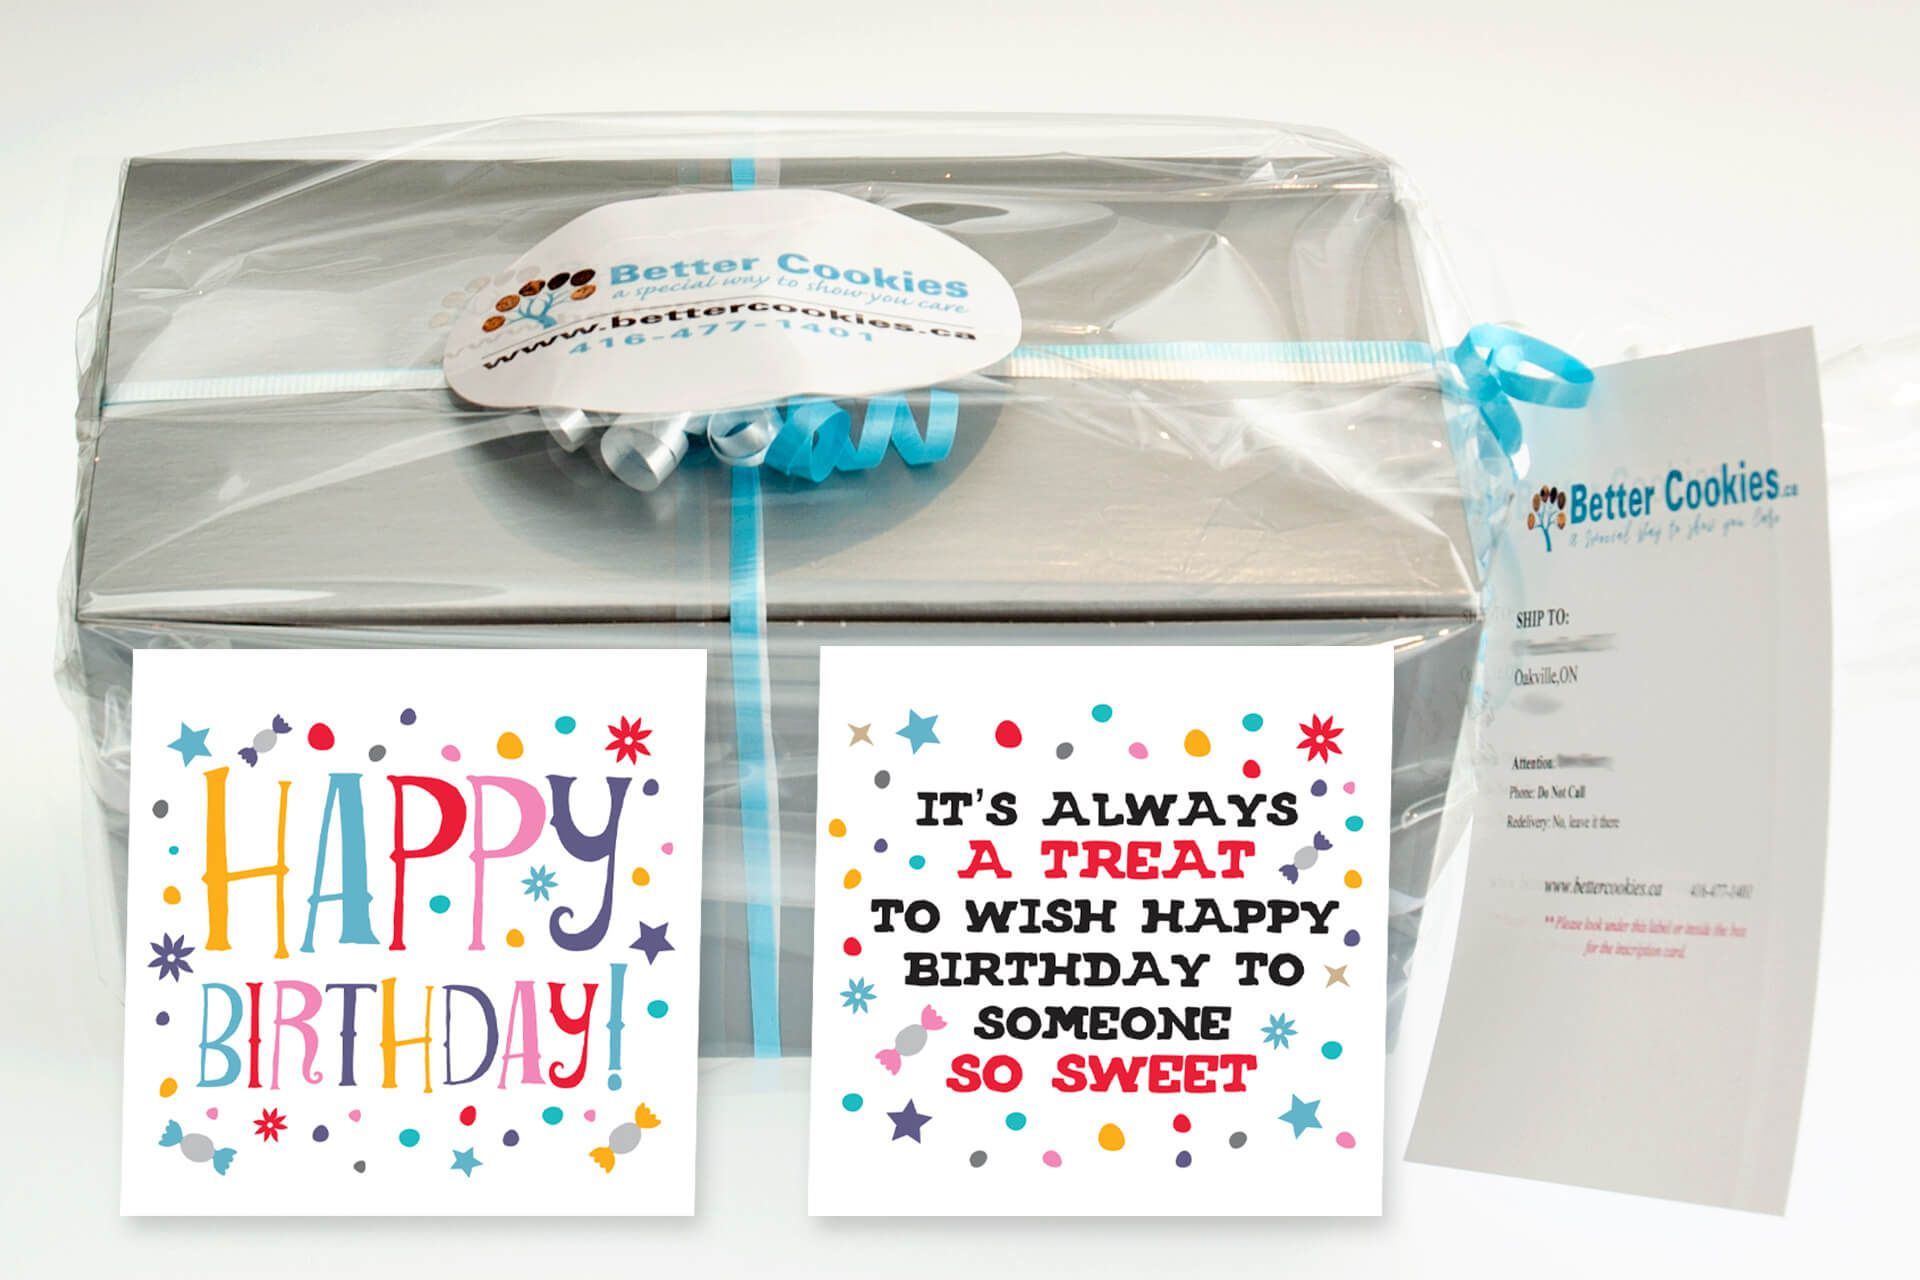 Small Sweet Birthday Gift Box With Our Gourmet Cookies Cookie Gift